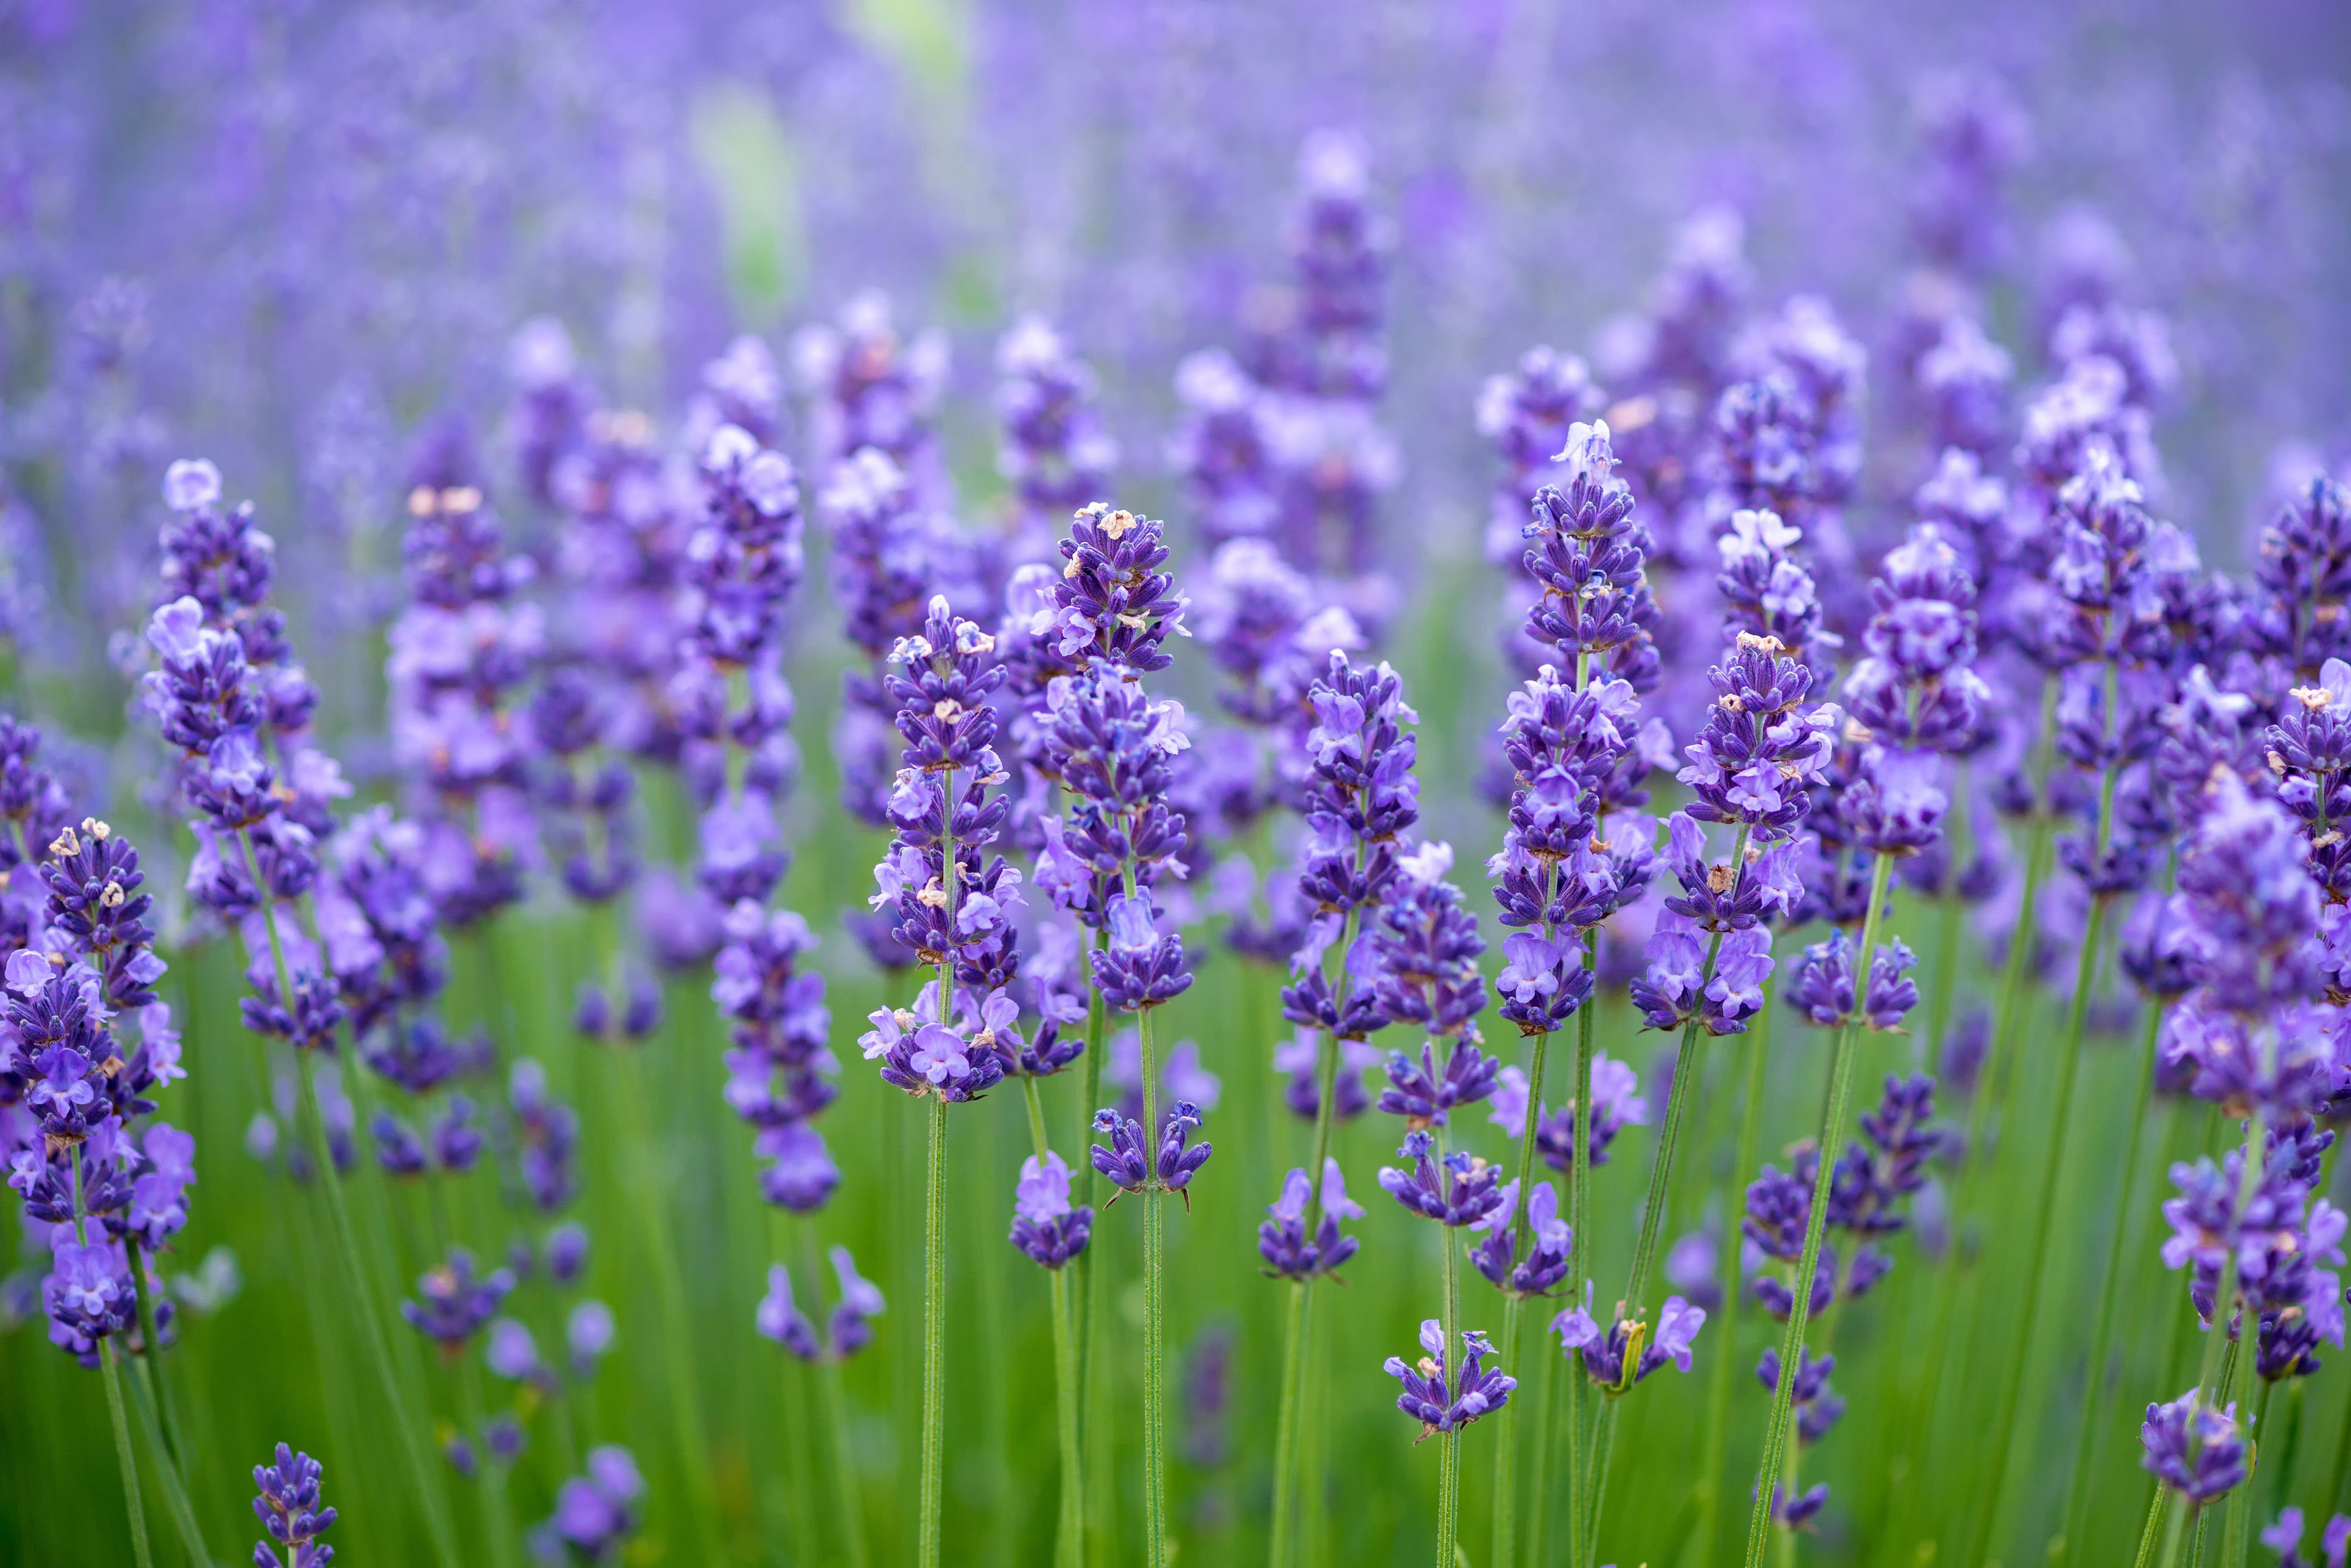 meadow-of-lavender-nature-composition-selective-royalty-free-image-539988160-1533825462